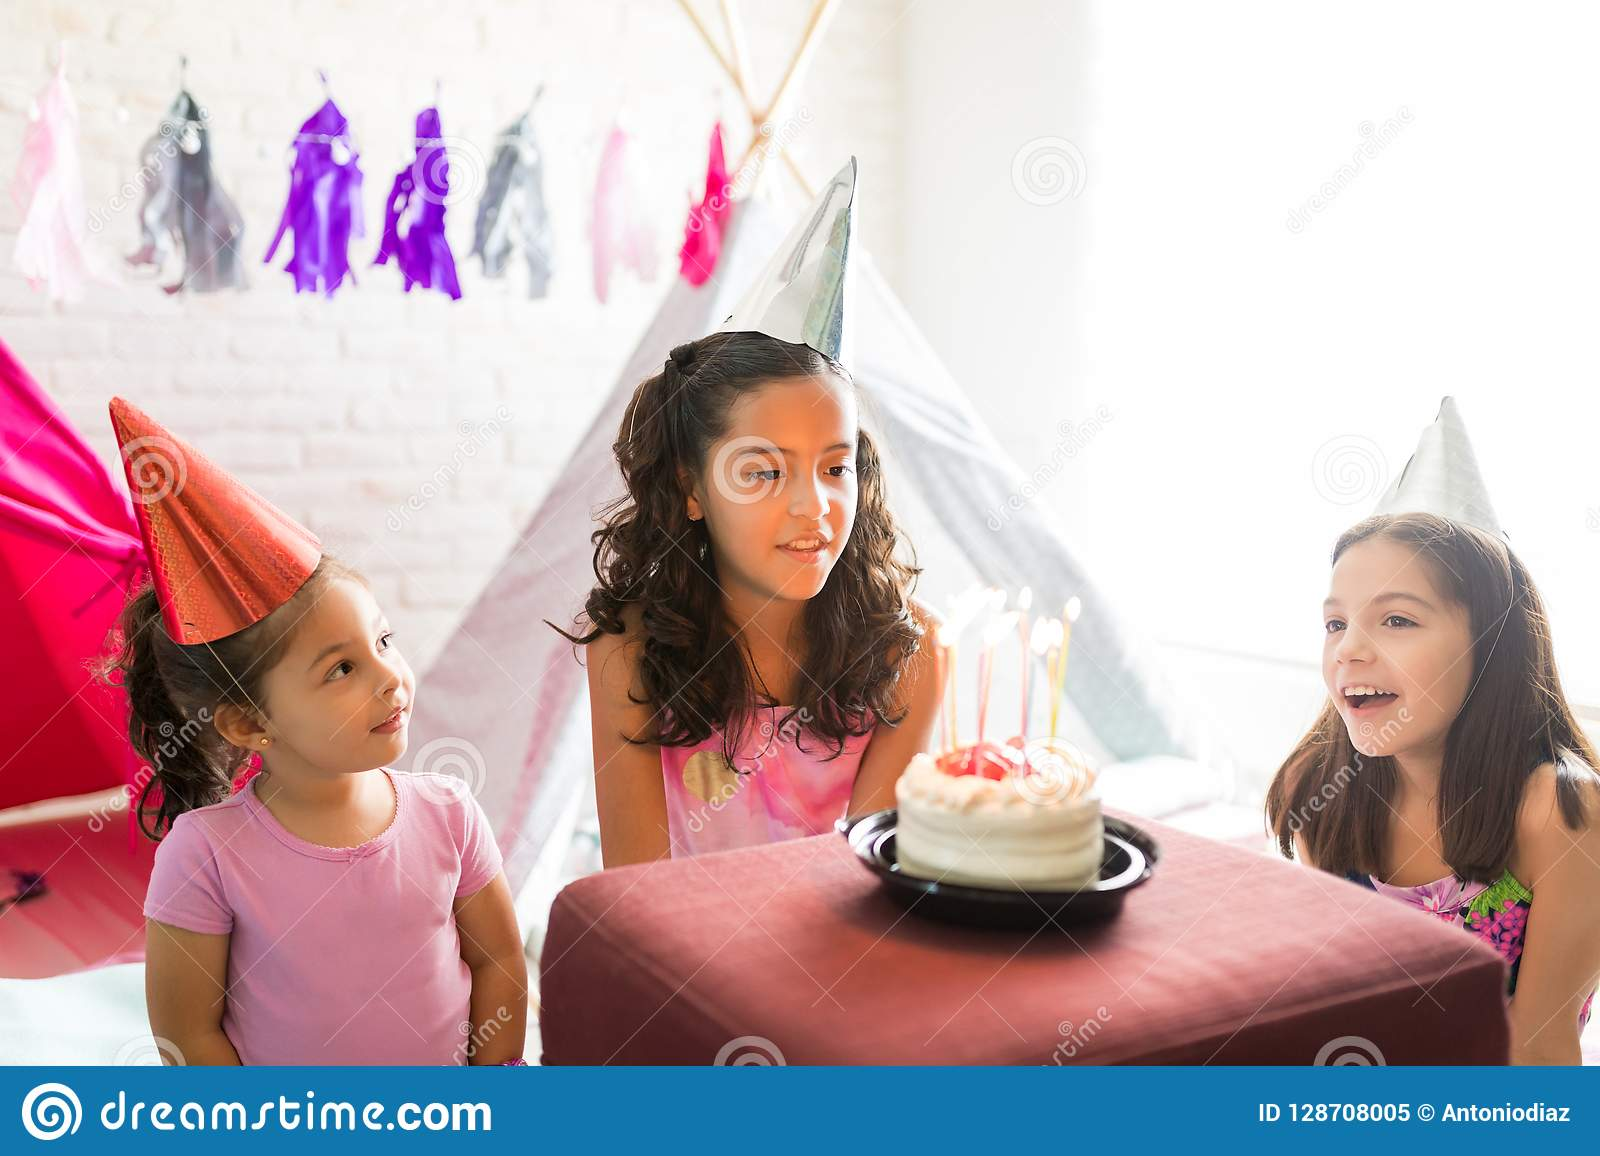 Swell Girl Singing Birthday Song For Friend Looking At Cake During Par Funny Birthday Cards Online Alyptdamsfinfo